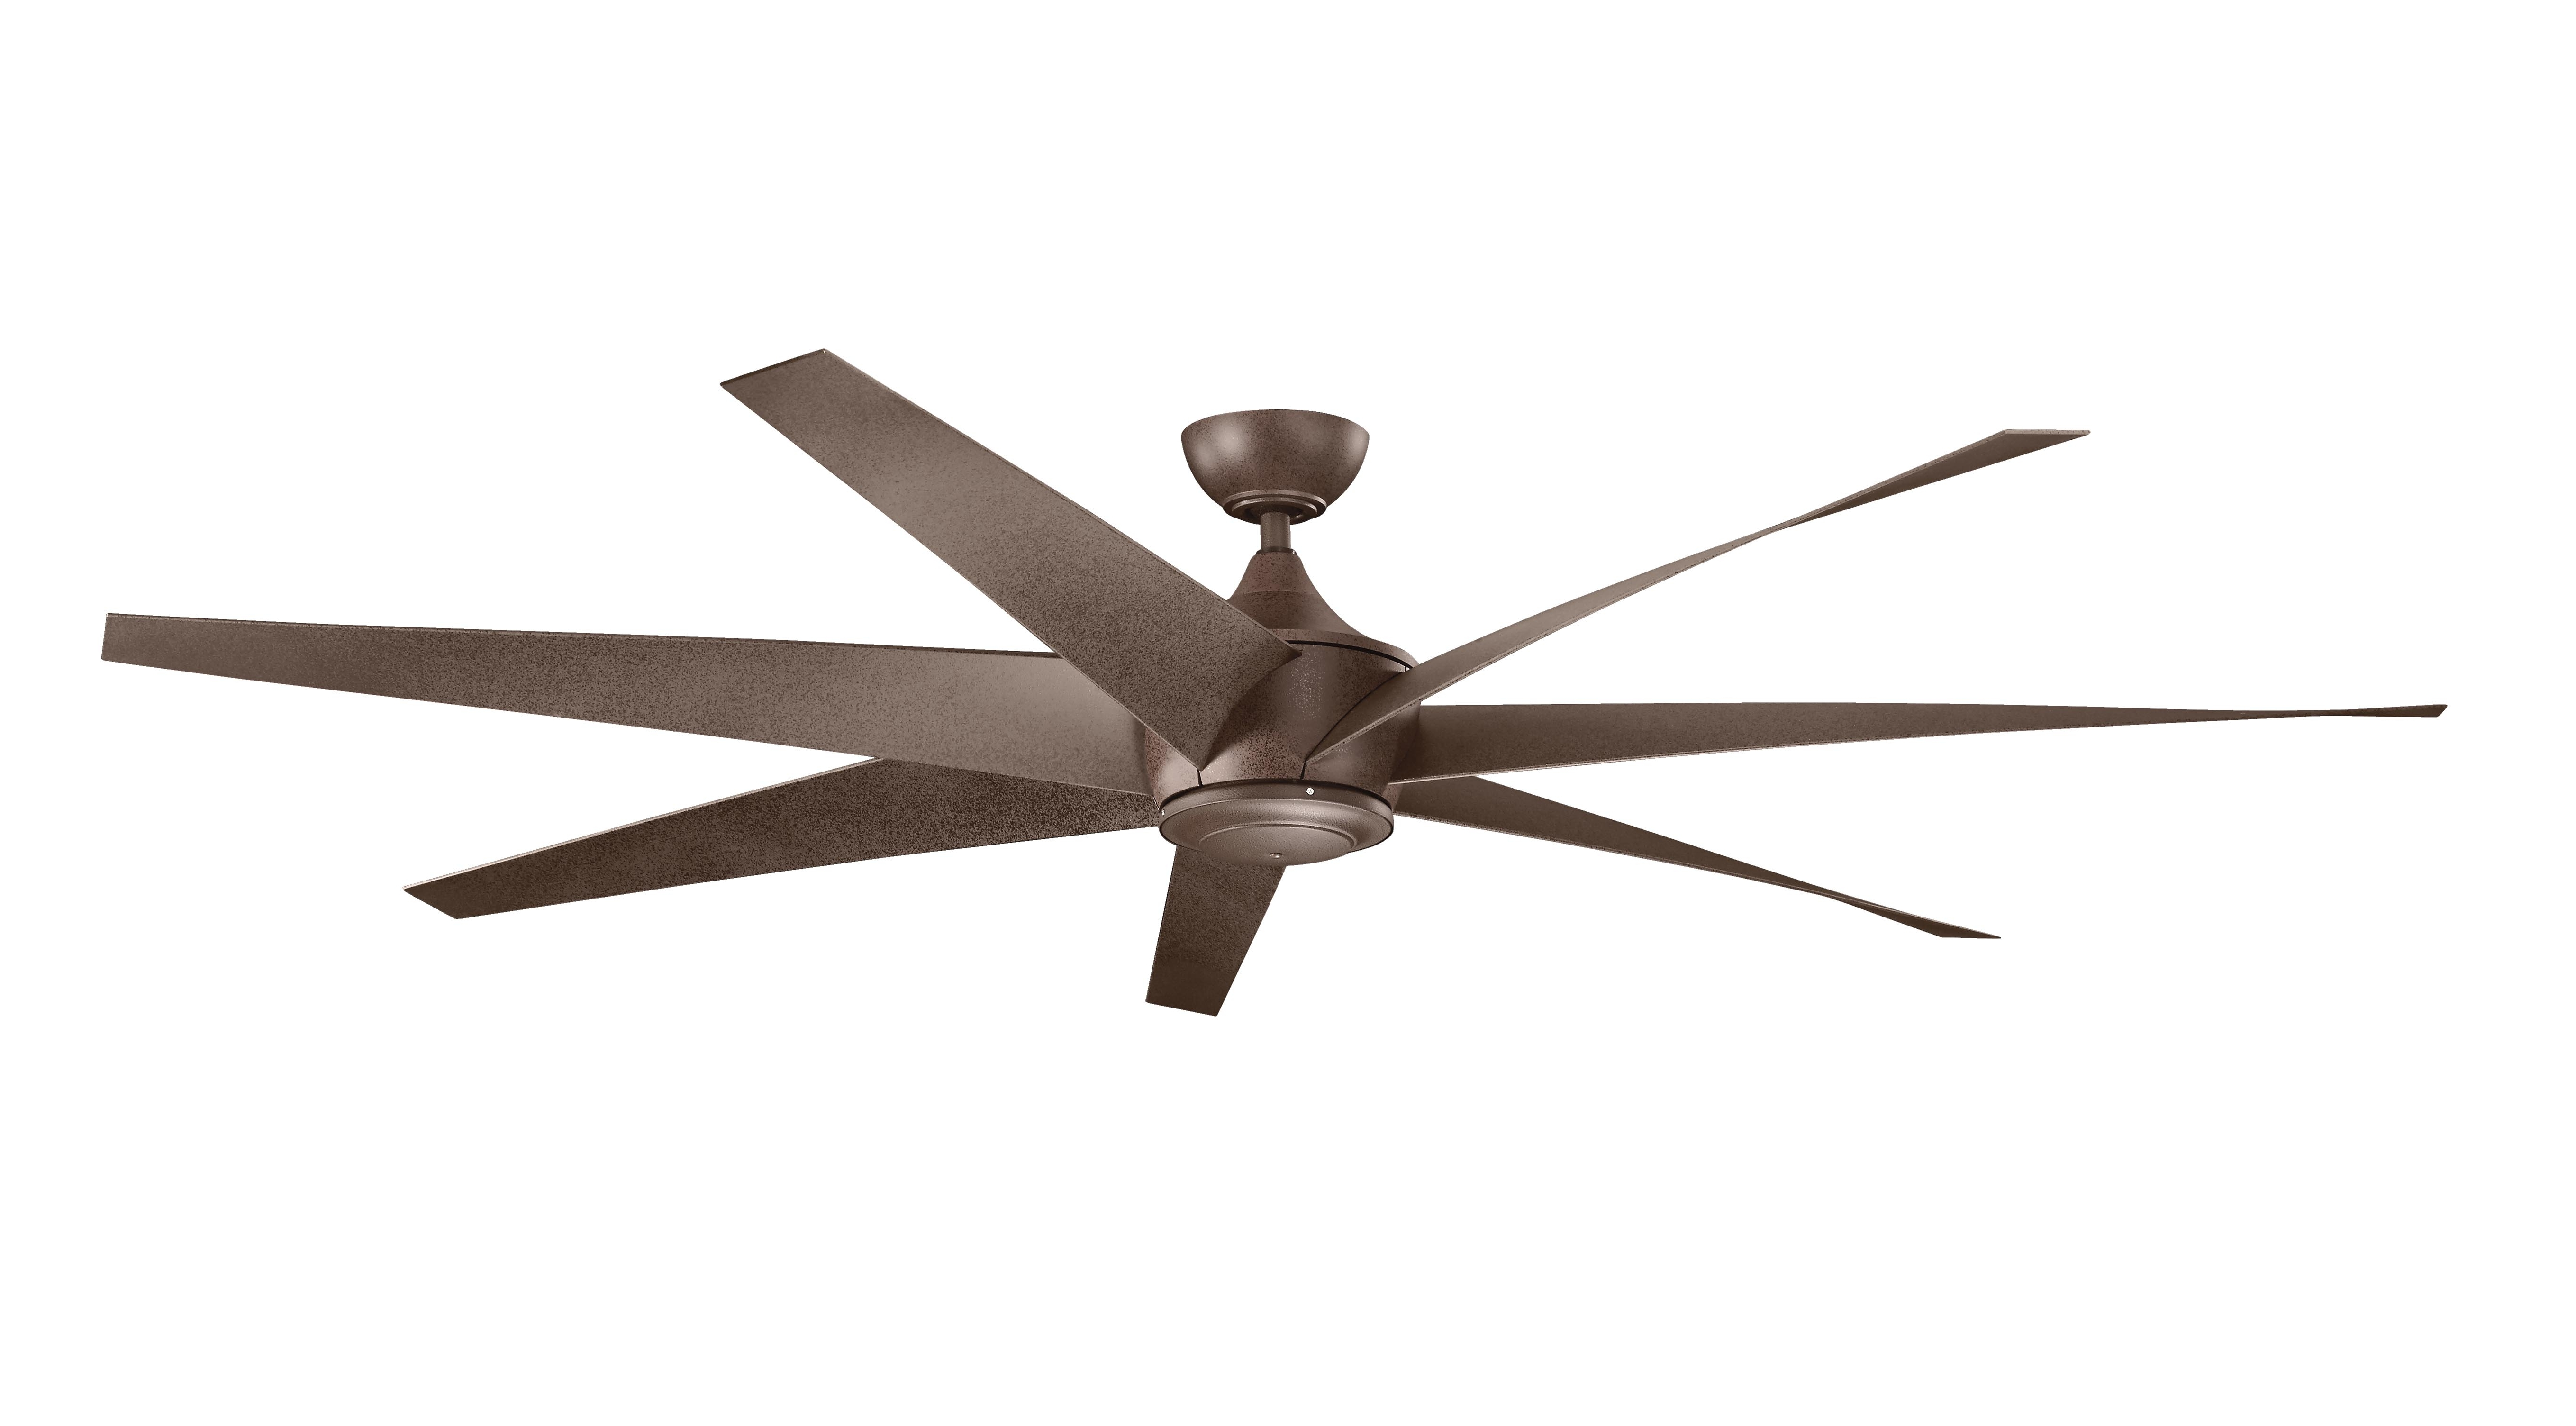 Fashionable Kichler Lehr Wet Climate Dc Ceiling Fan – New For 2016 Throughout 72 Predator Bronze Outdoor Ceiling Fans With Light Kit (Gallery 5 of 20)